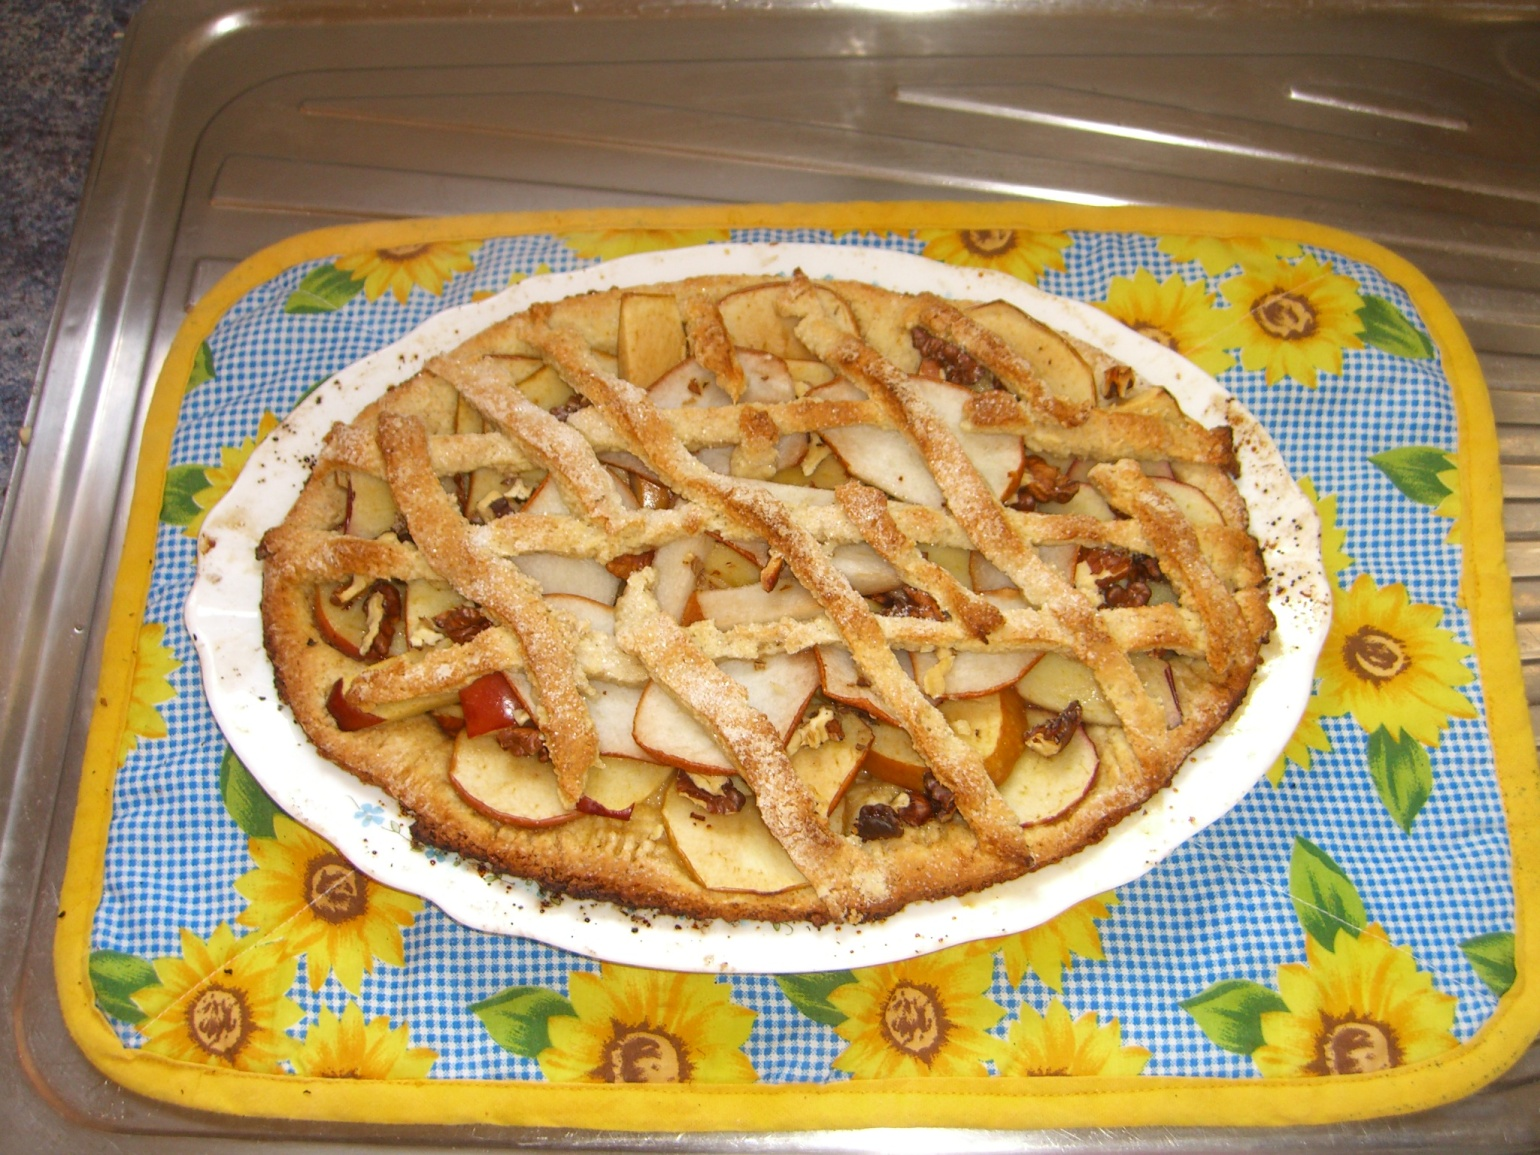 Apple tart, one Sunday afternoon in 2008